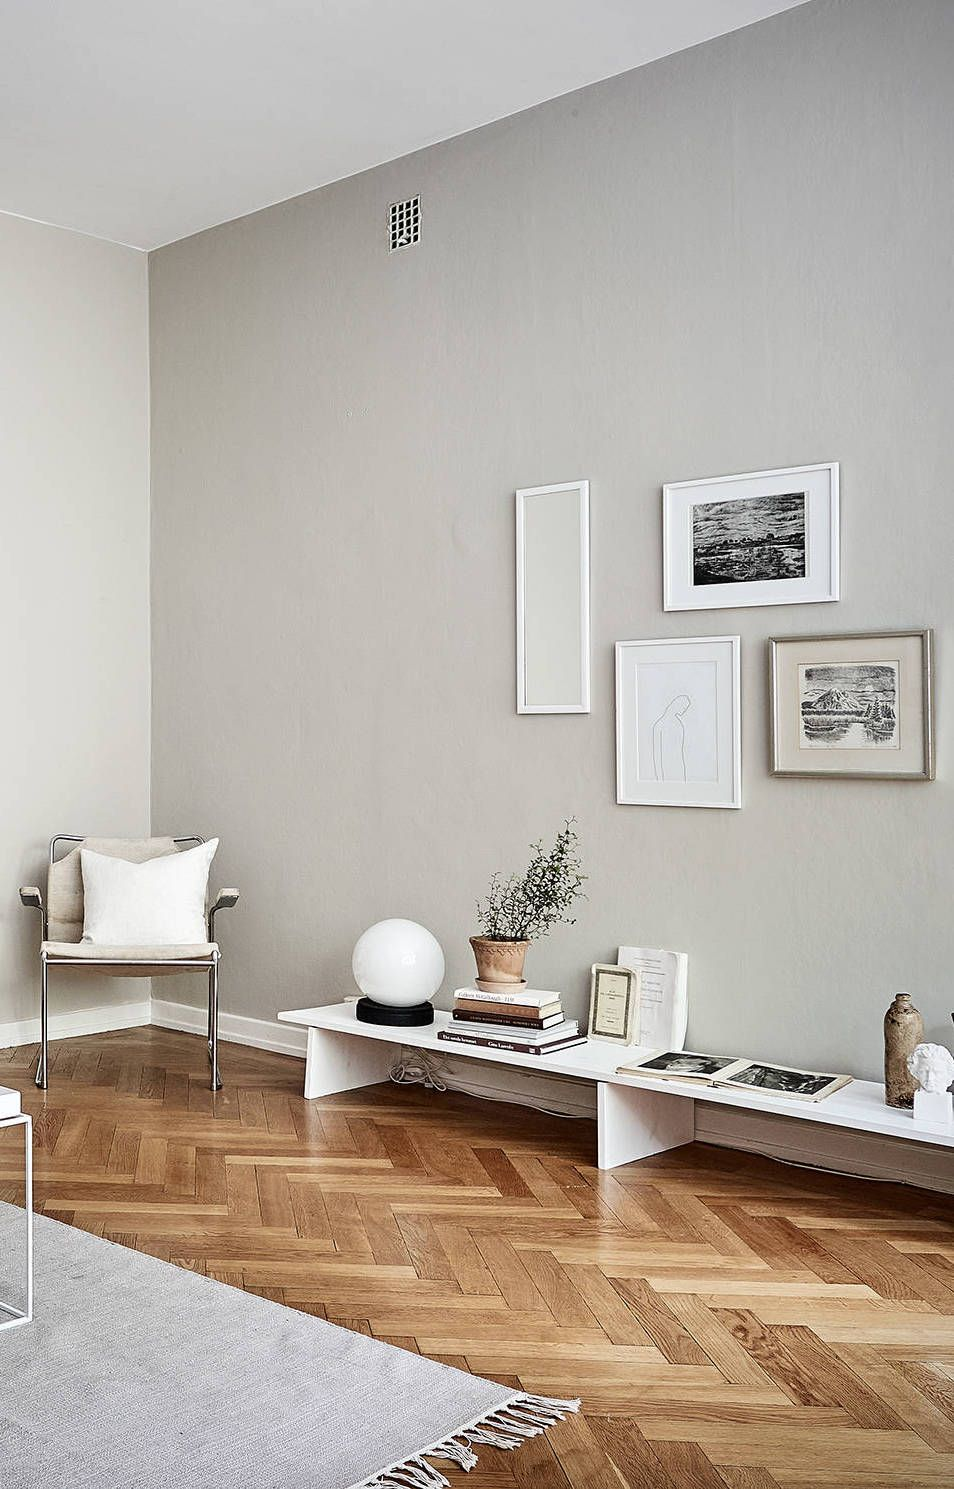 Minimal home with warm colors | Warm colors, Minimal and Blog